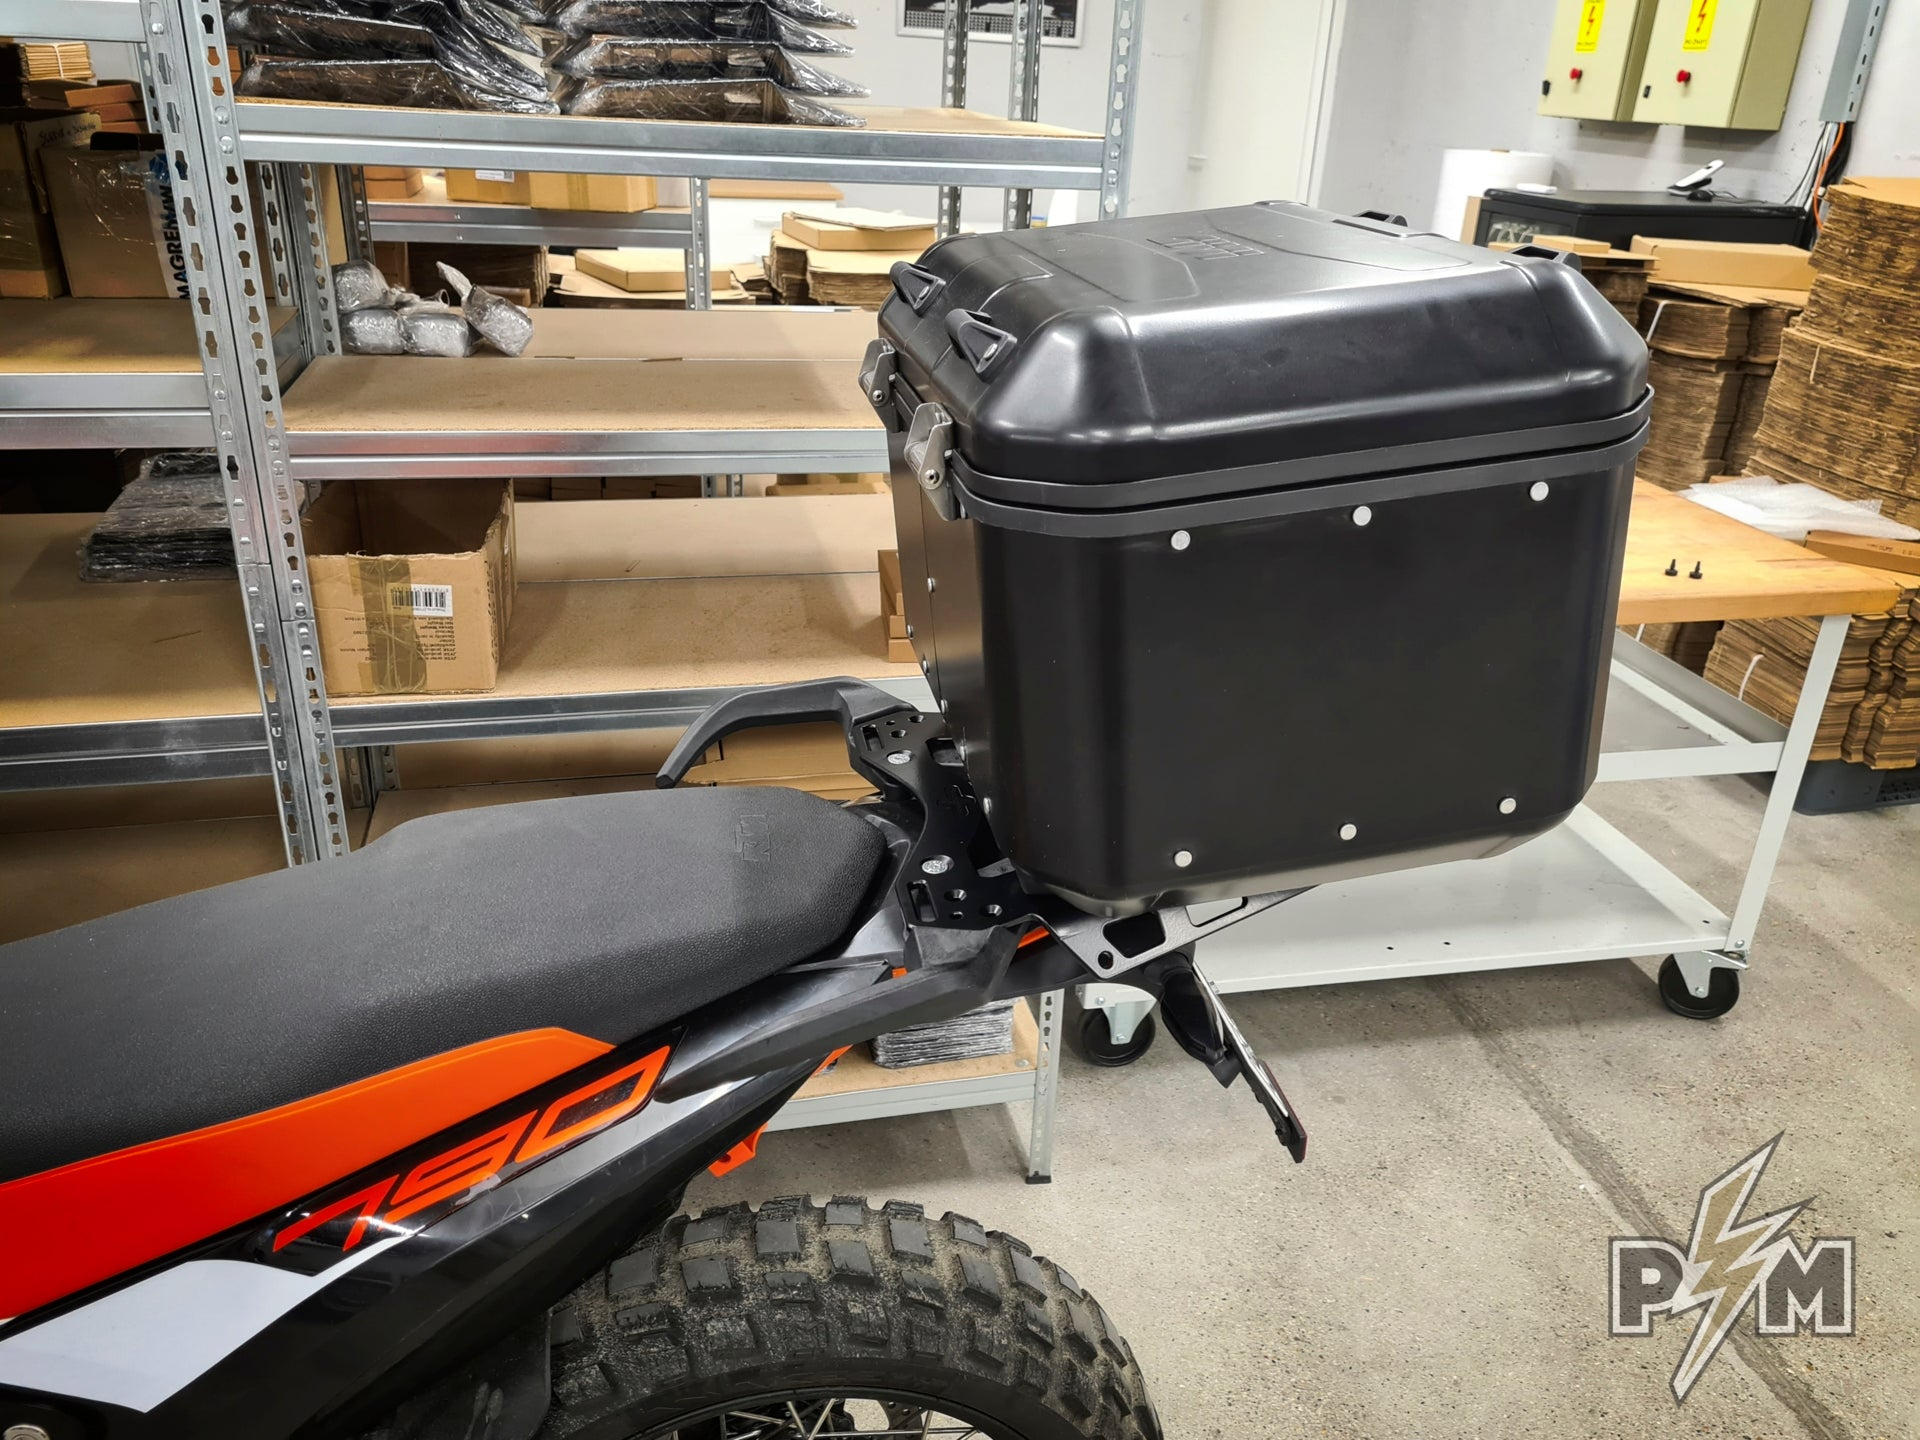 KTM 790/890 Billet rack - Large and top cases